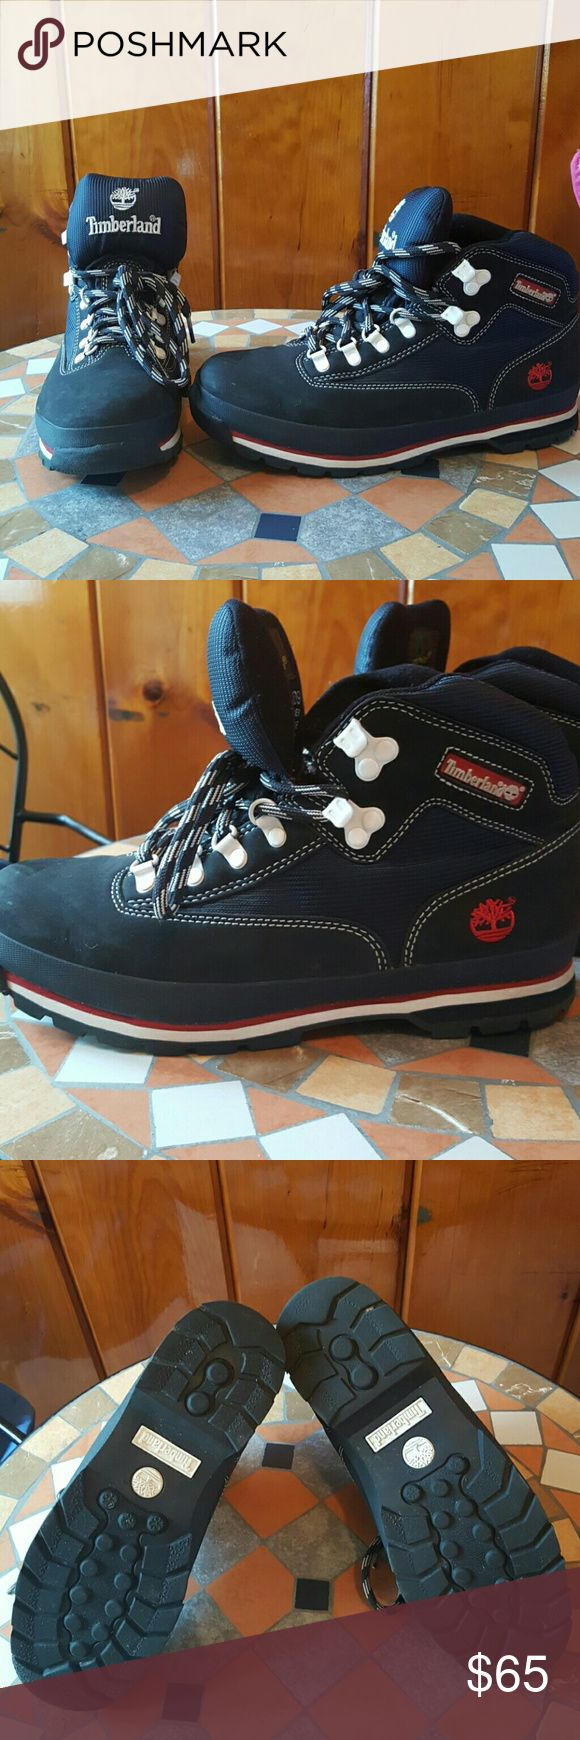 Navy Blue Timberland Boots Excelent Used Condition! Used just 3 or 4 times! Navy blue color, red Timberland logo on the sides! Timberland Shoes Boots